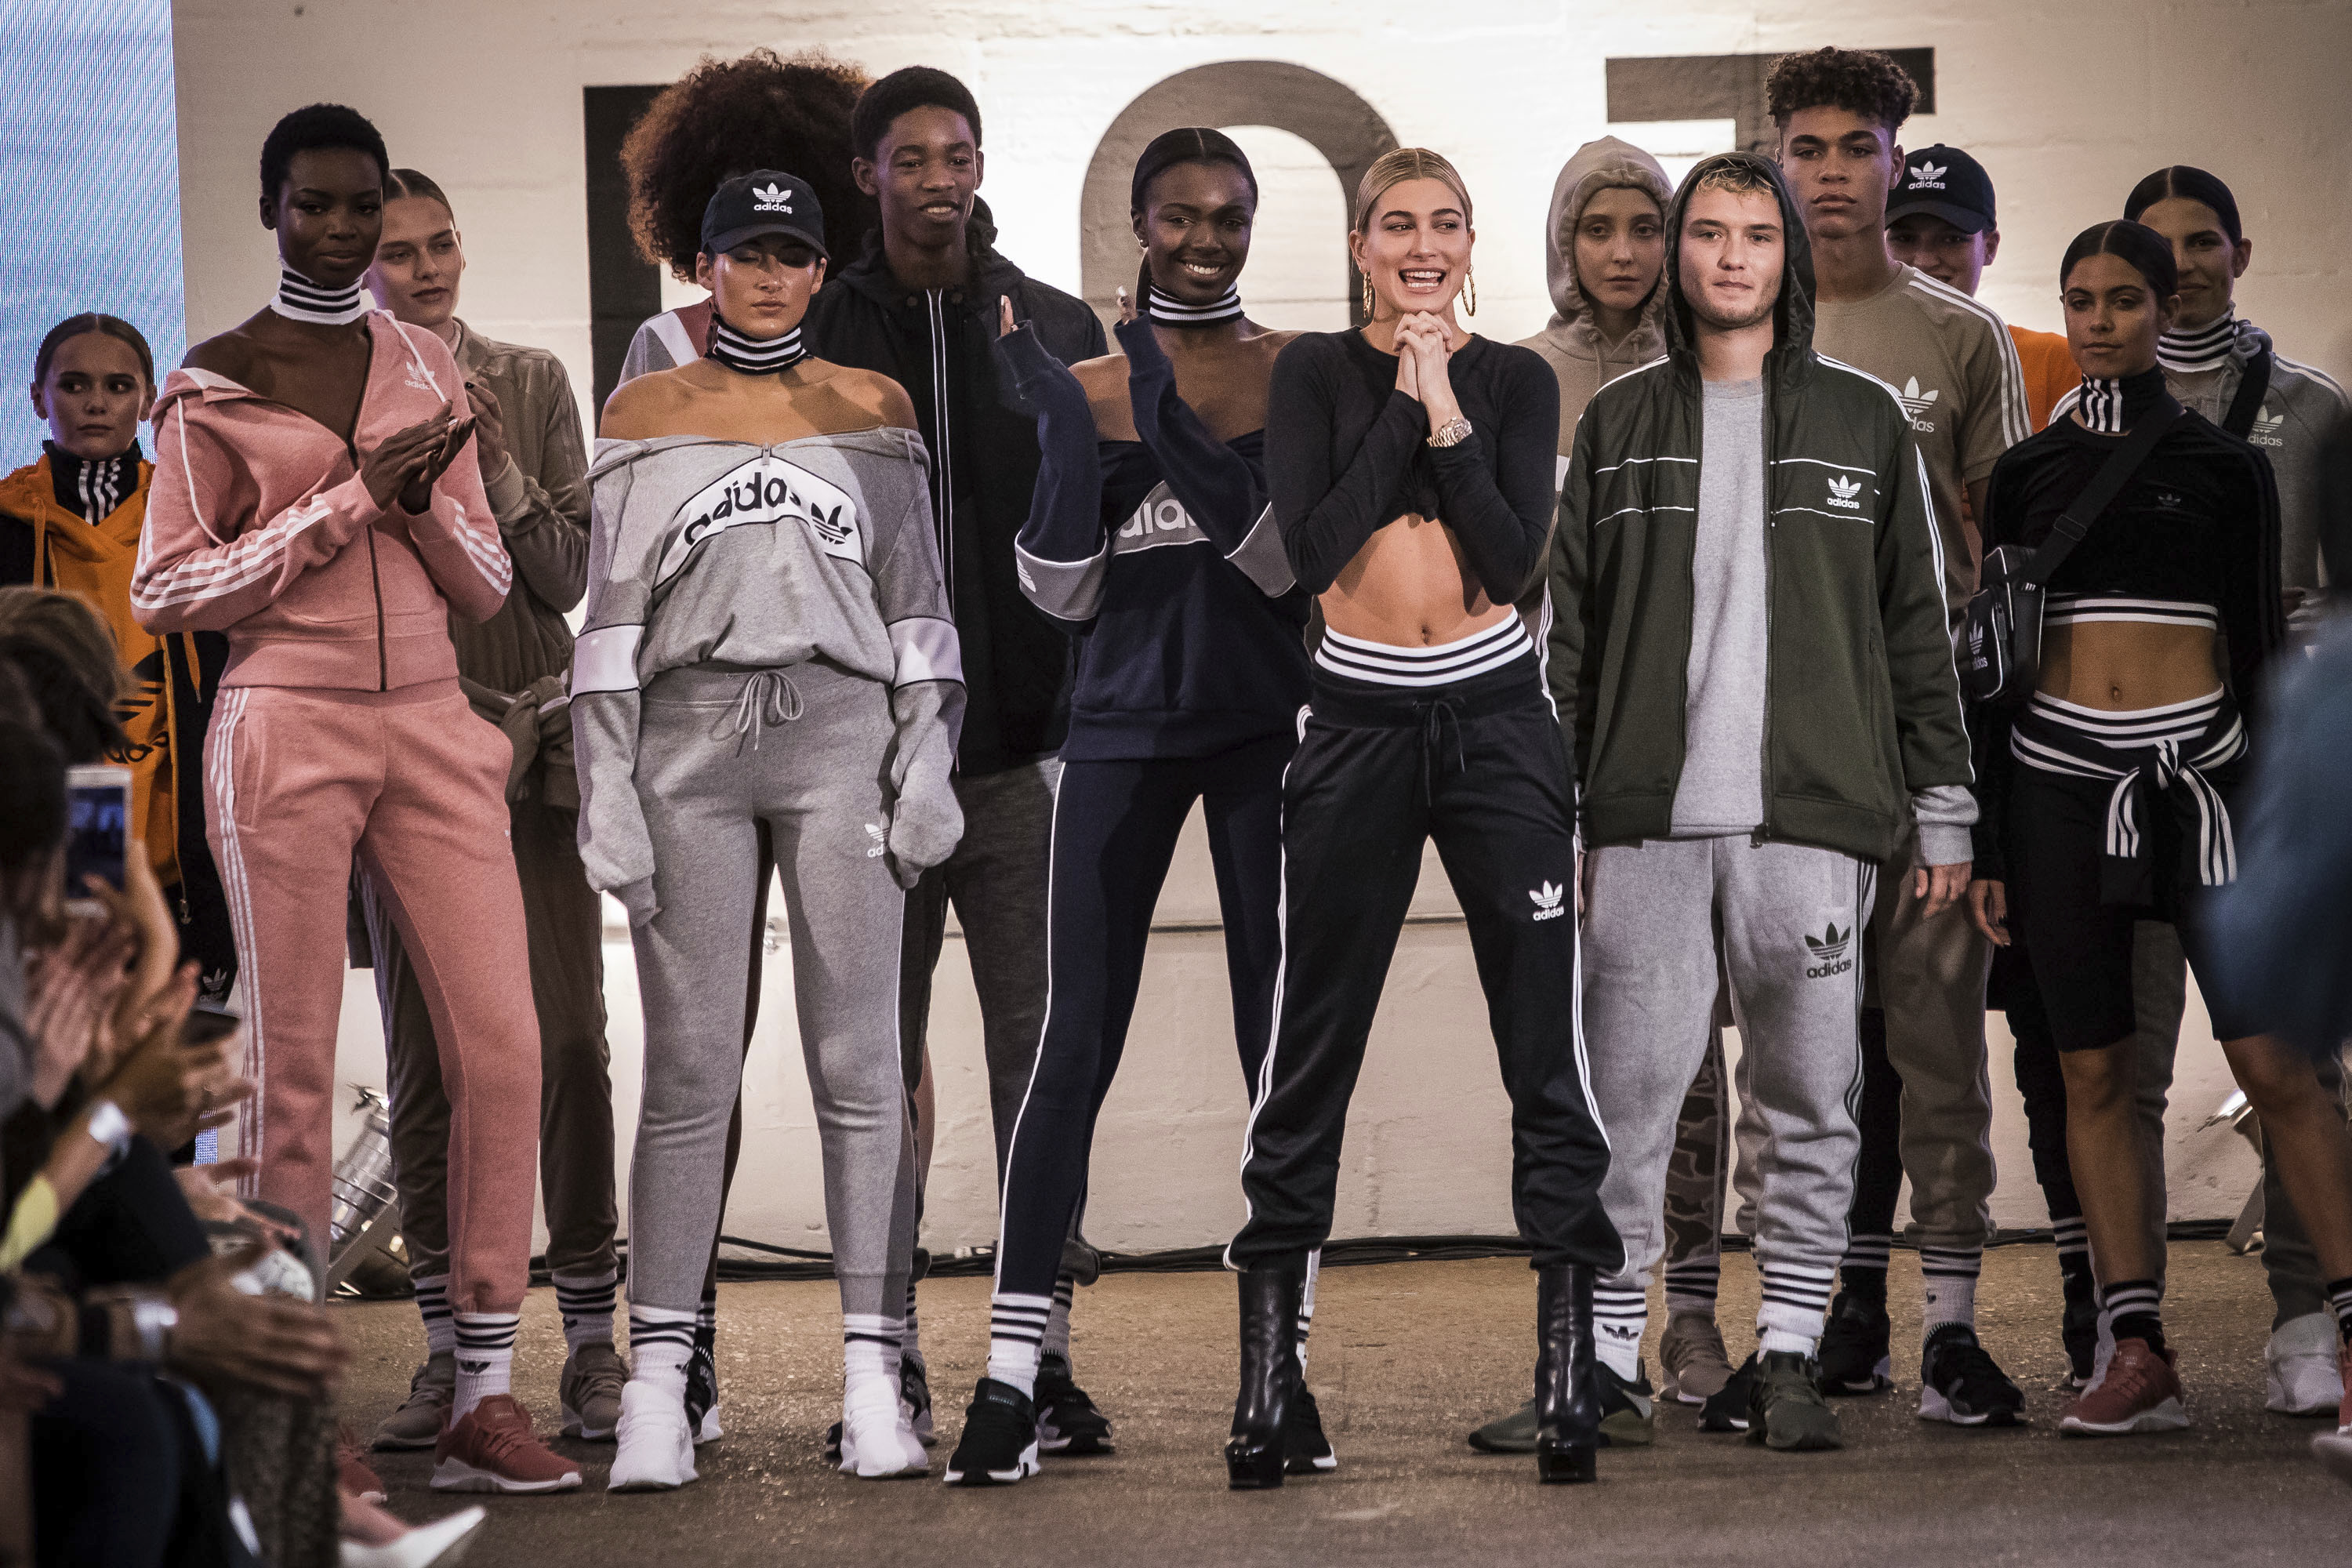 American model Hailey Rhode Baldwin greets guests after the Adidas x JD Sports 'Streets of EQT' Spring/Summer 2018 show at London Fashion Week in London, Friday, Sept. 15, 2017.(Photo by Vianney Le Caer/Invision/AP)